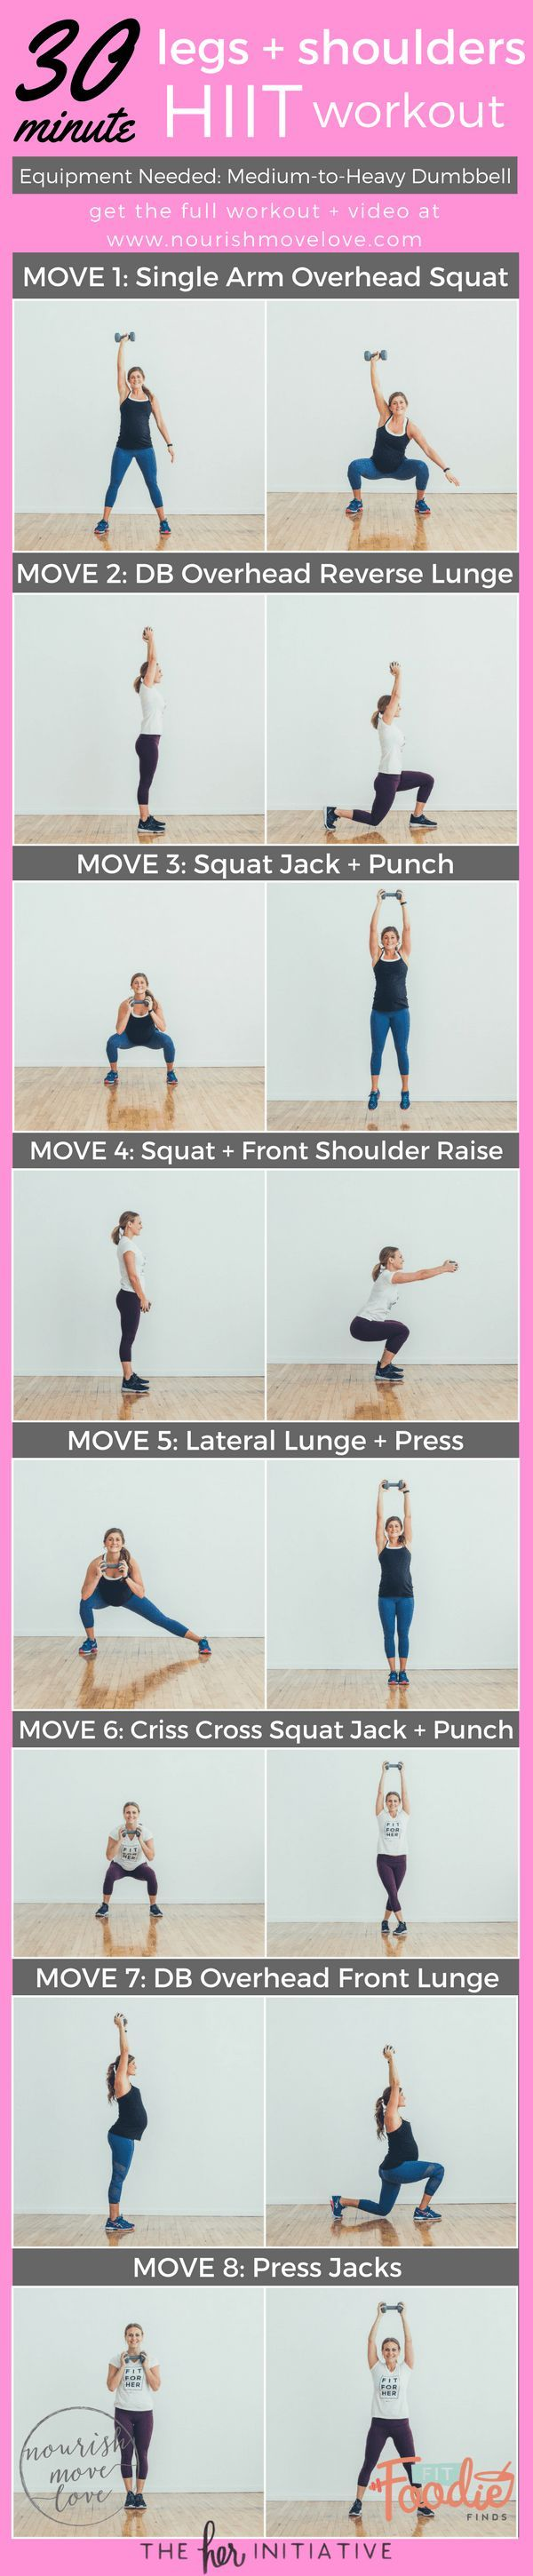 Tone your thighs and get lean shoulders by summer with this 30 Minute Legs + Shoulders HIIT Workout. Perfect naptime workout! | www.nourishmovelove.com